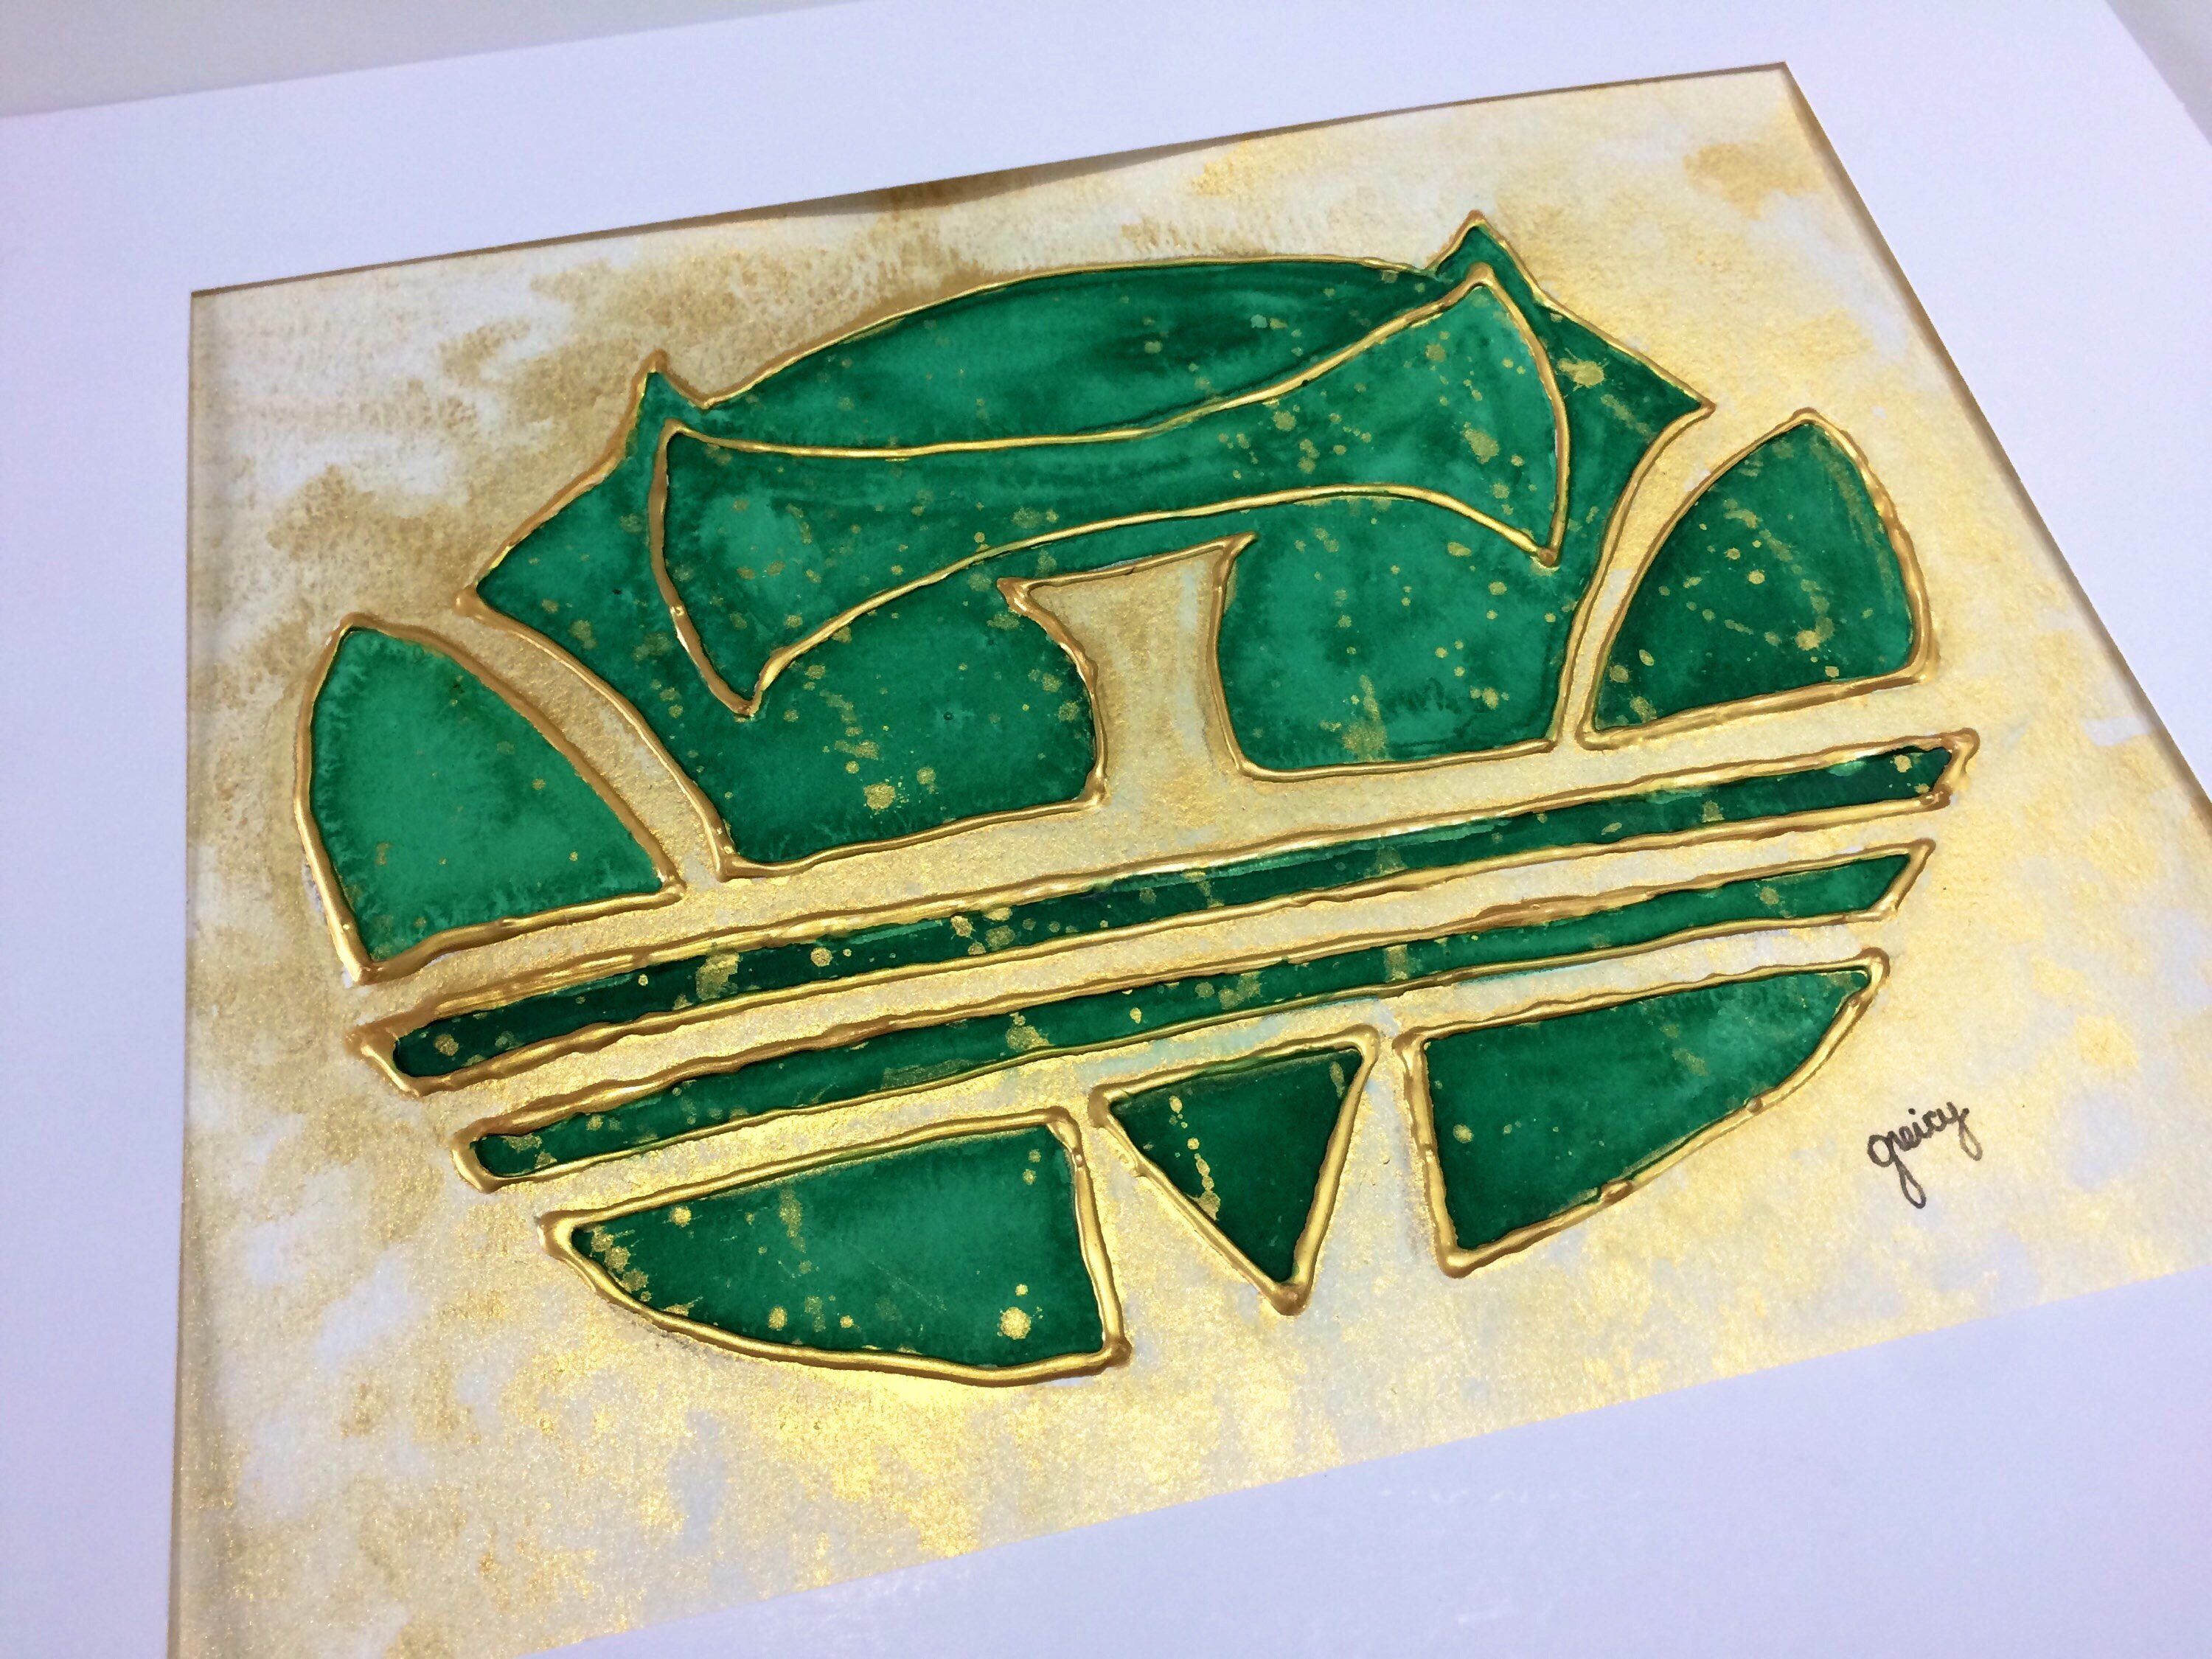 Soccer Wall Art - PTFC Portland Timbers - Gift for Him - Gift for ...